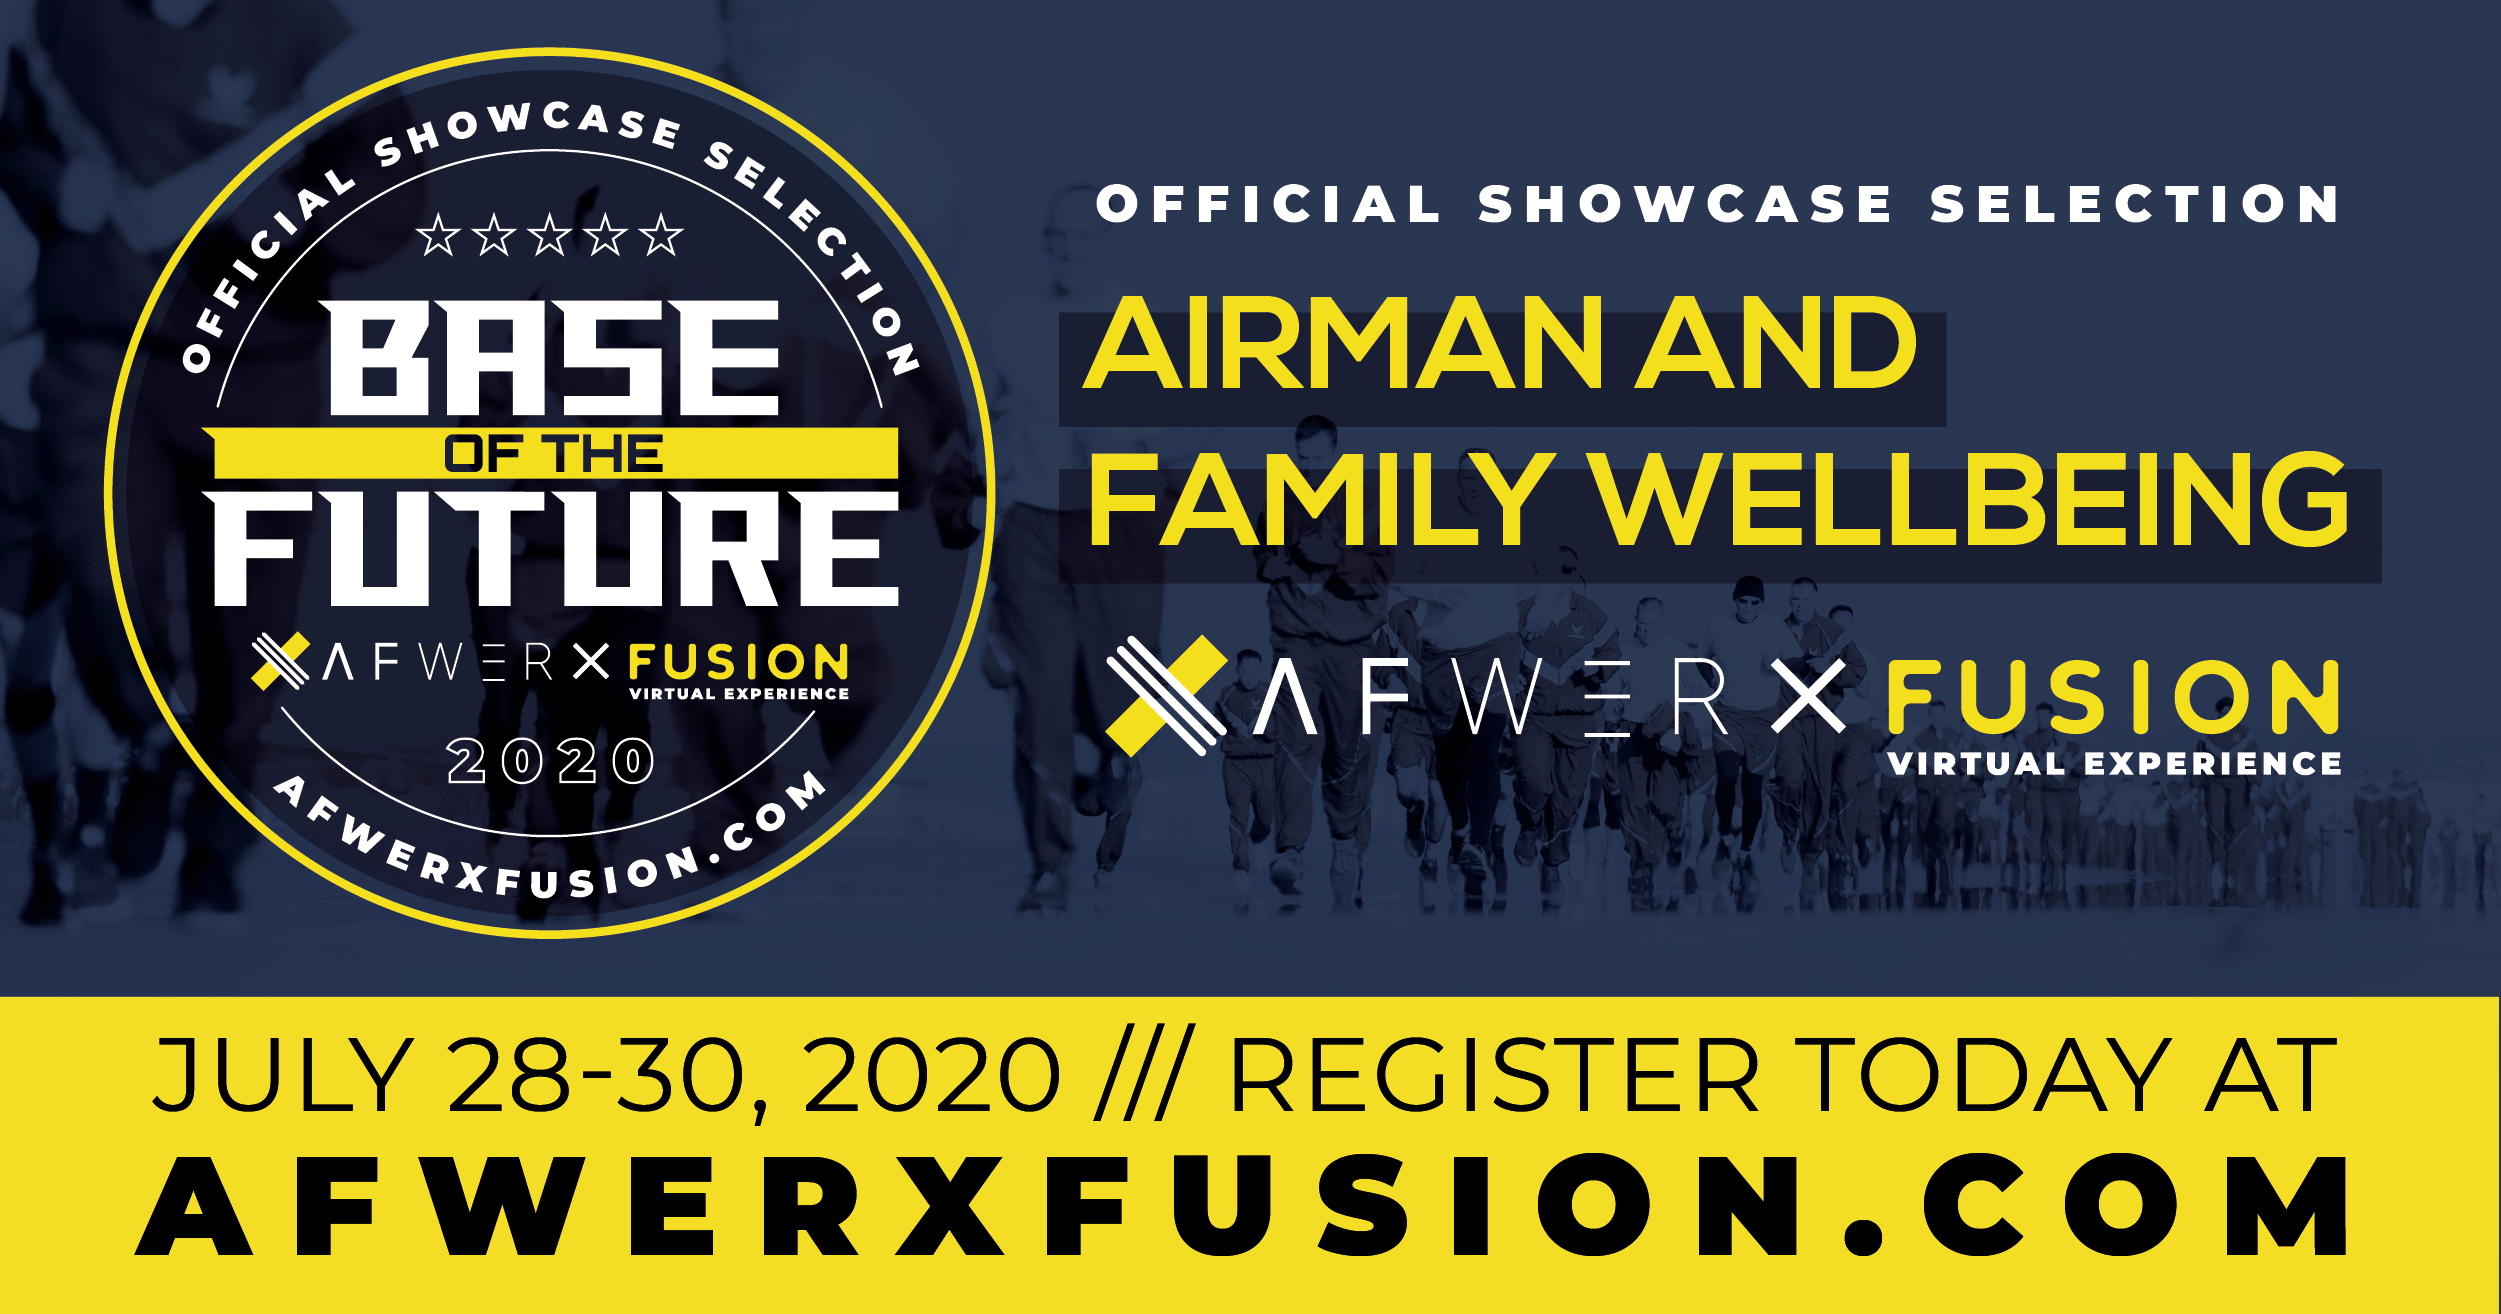 HealthCode teams with 4empowerment at AFWERX Fusion